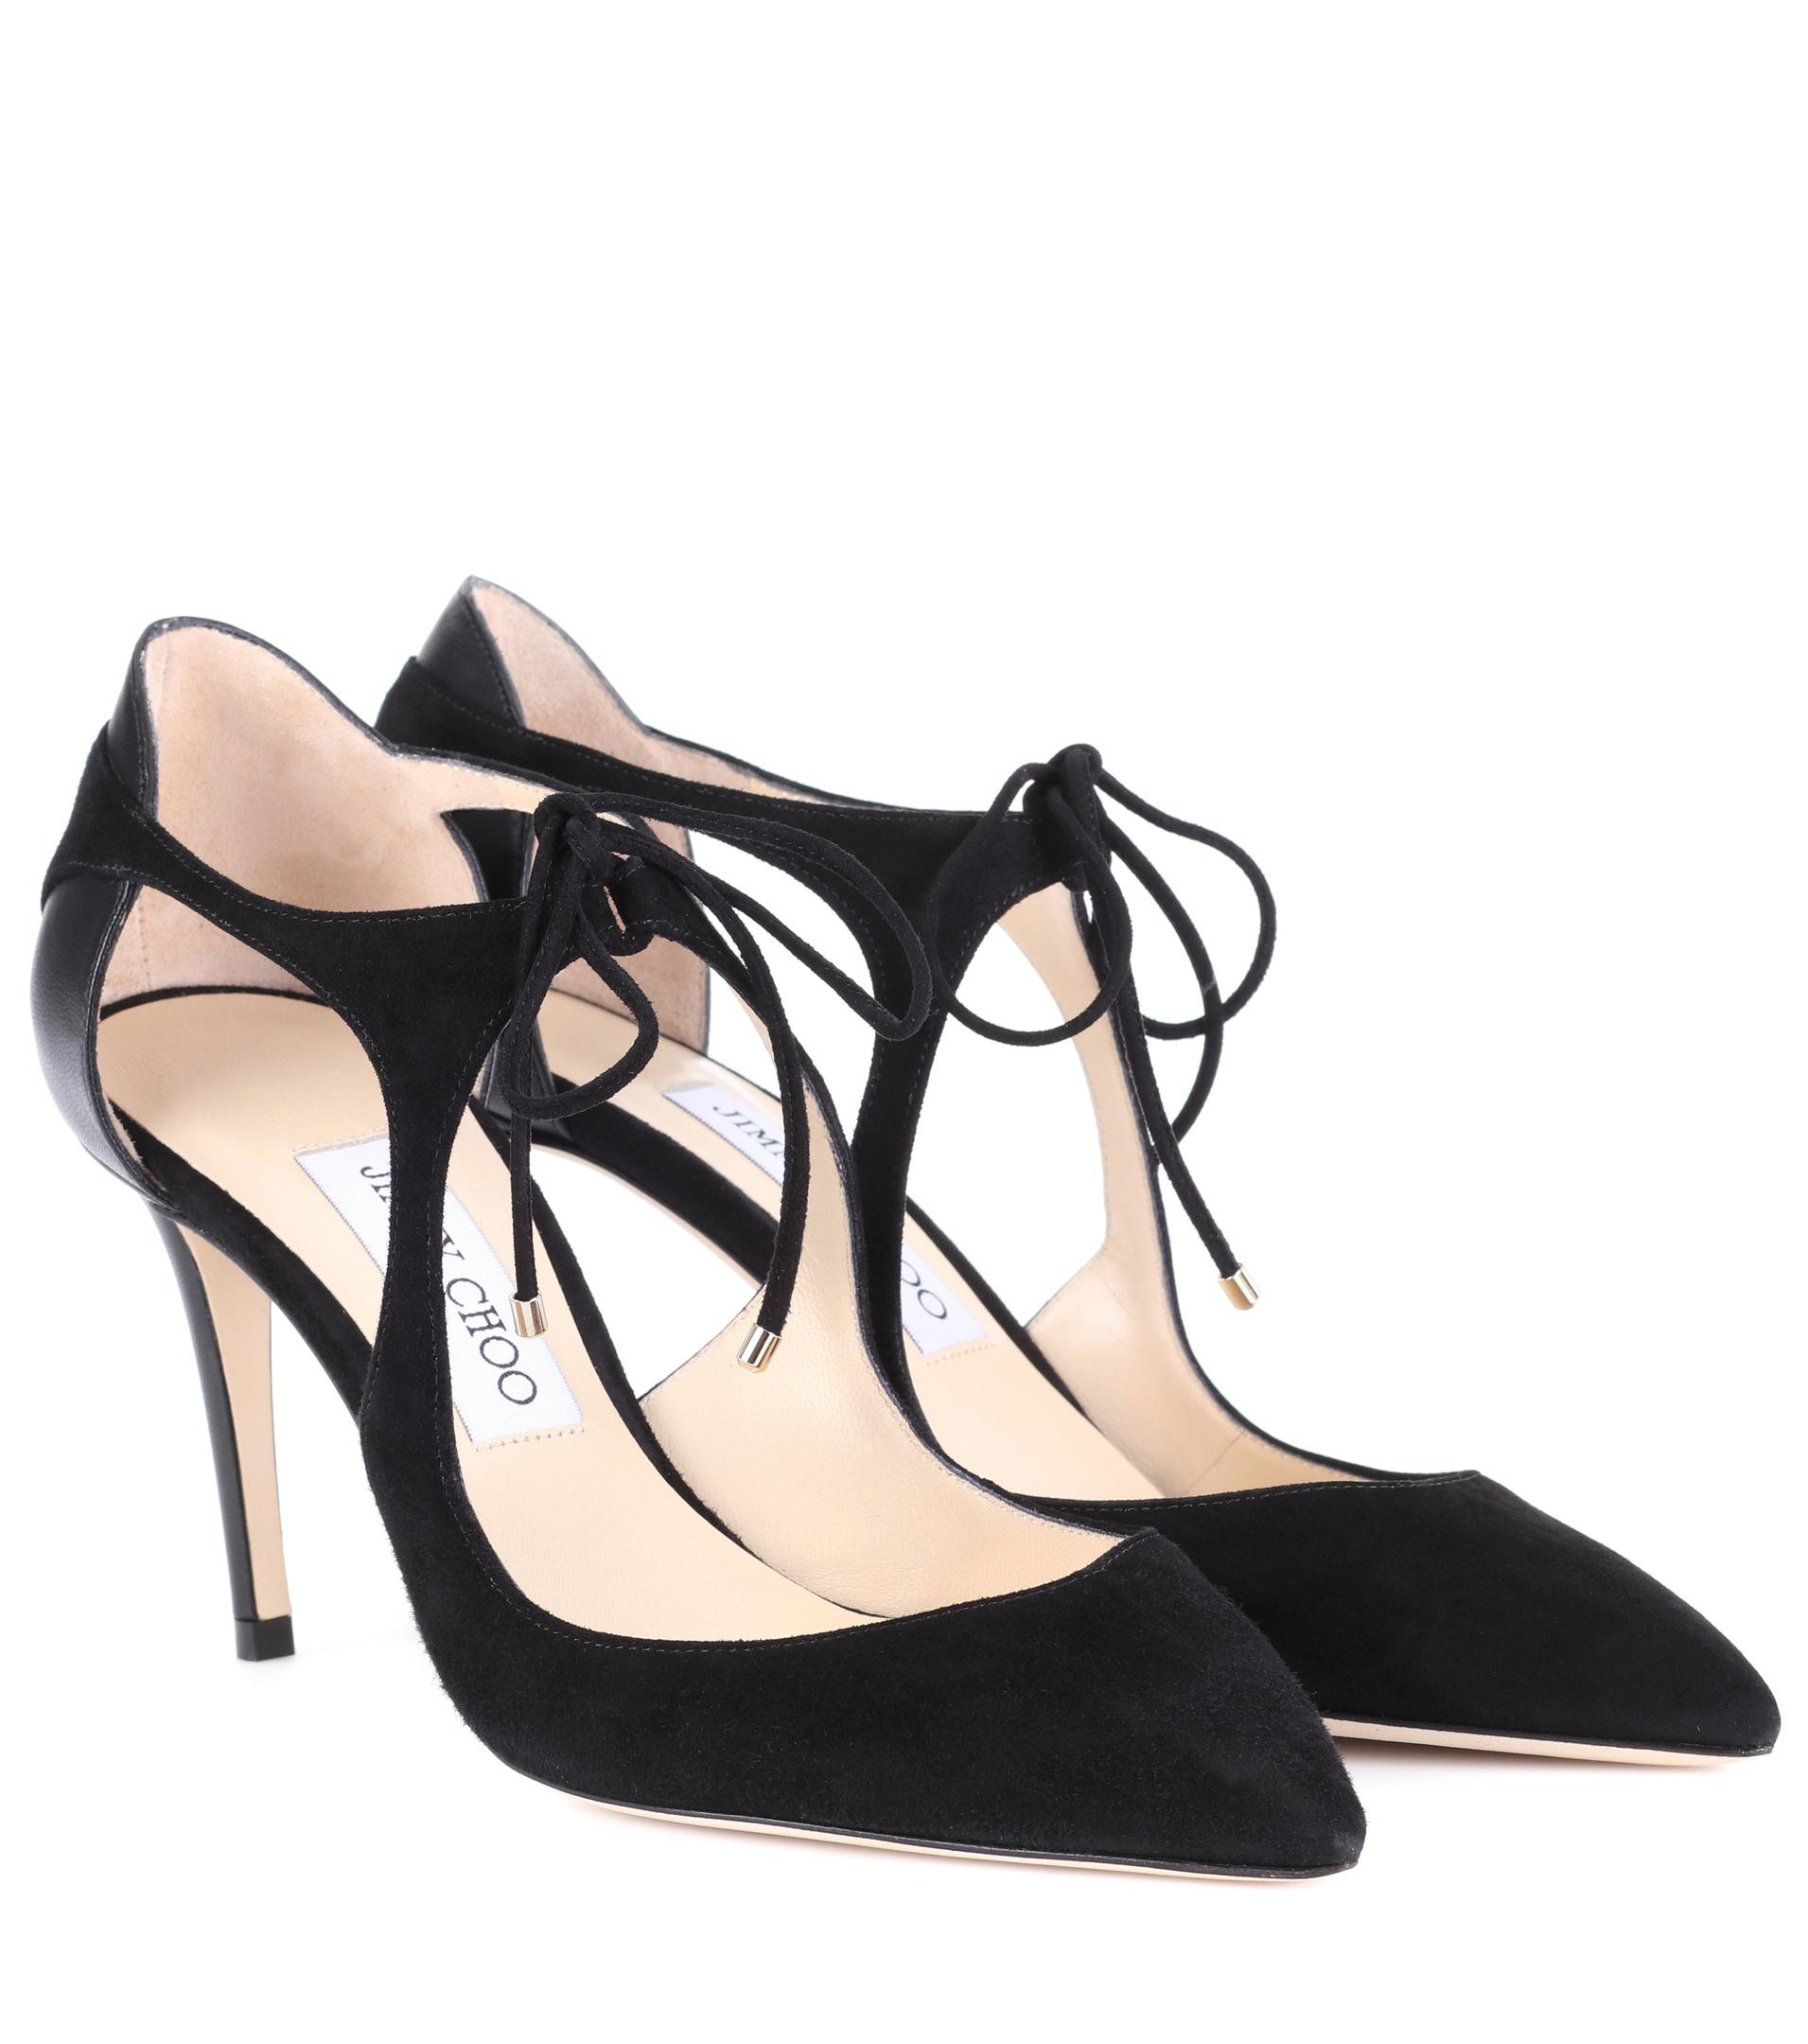 Vanessa 100 Suede Tie Up Pumps in Ballet Pink Suede and Nappa Leathers Jimmy Choo London Cheap Sale For Sale Get To Buy Cheap Price Discount 2018 New Outlet Extremely CHrdfw